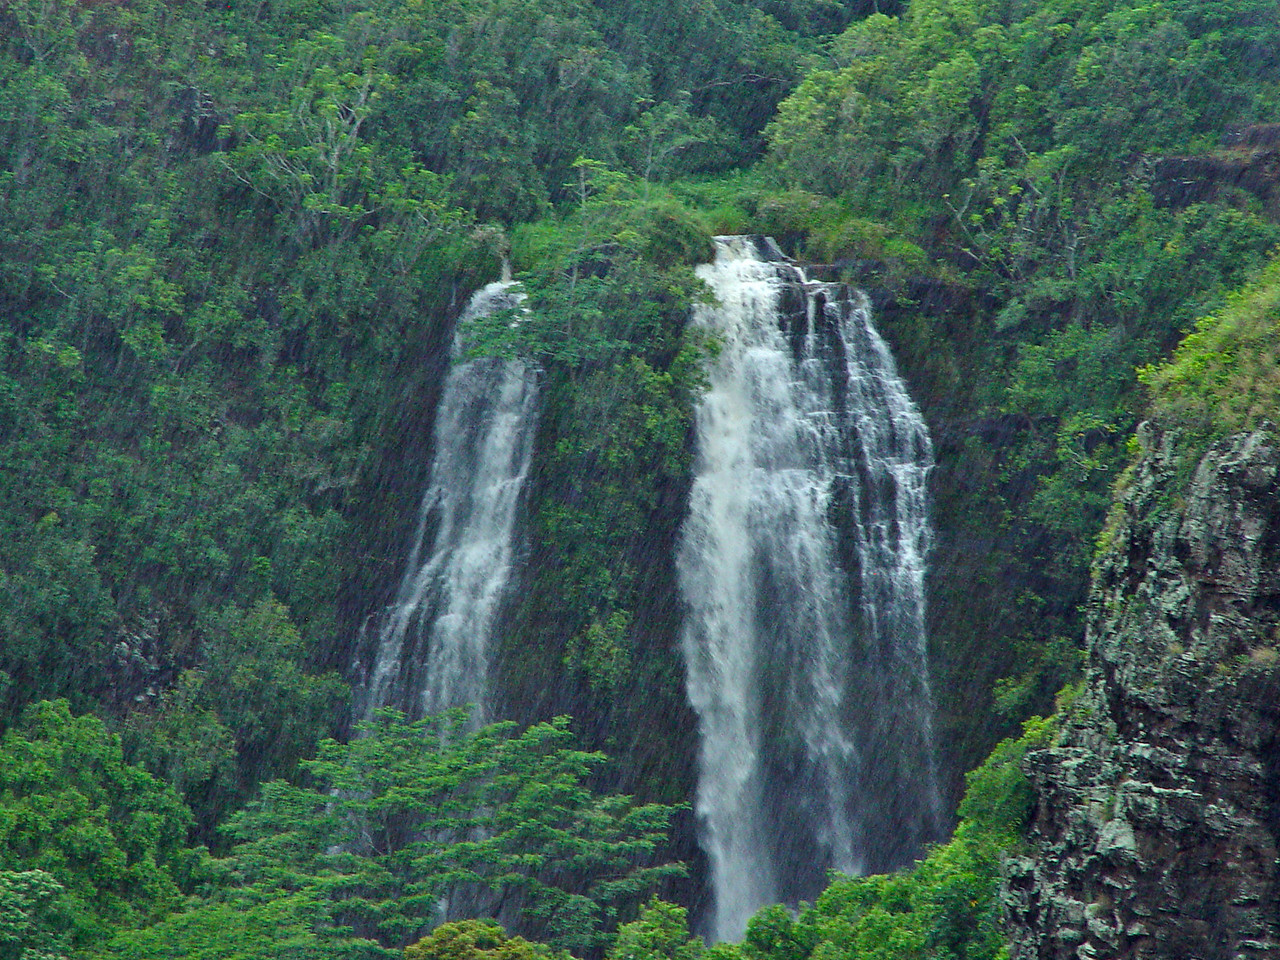 Further up Highway 580 from Wailua we found Opaeka'a Falls.  These falls were also engorged with water and provided a spectacular view.